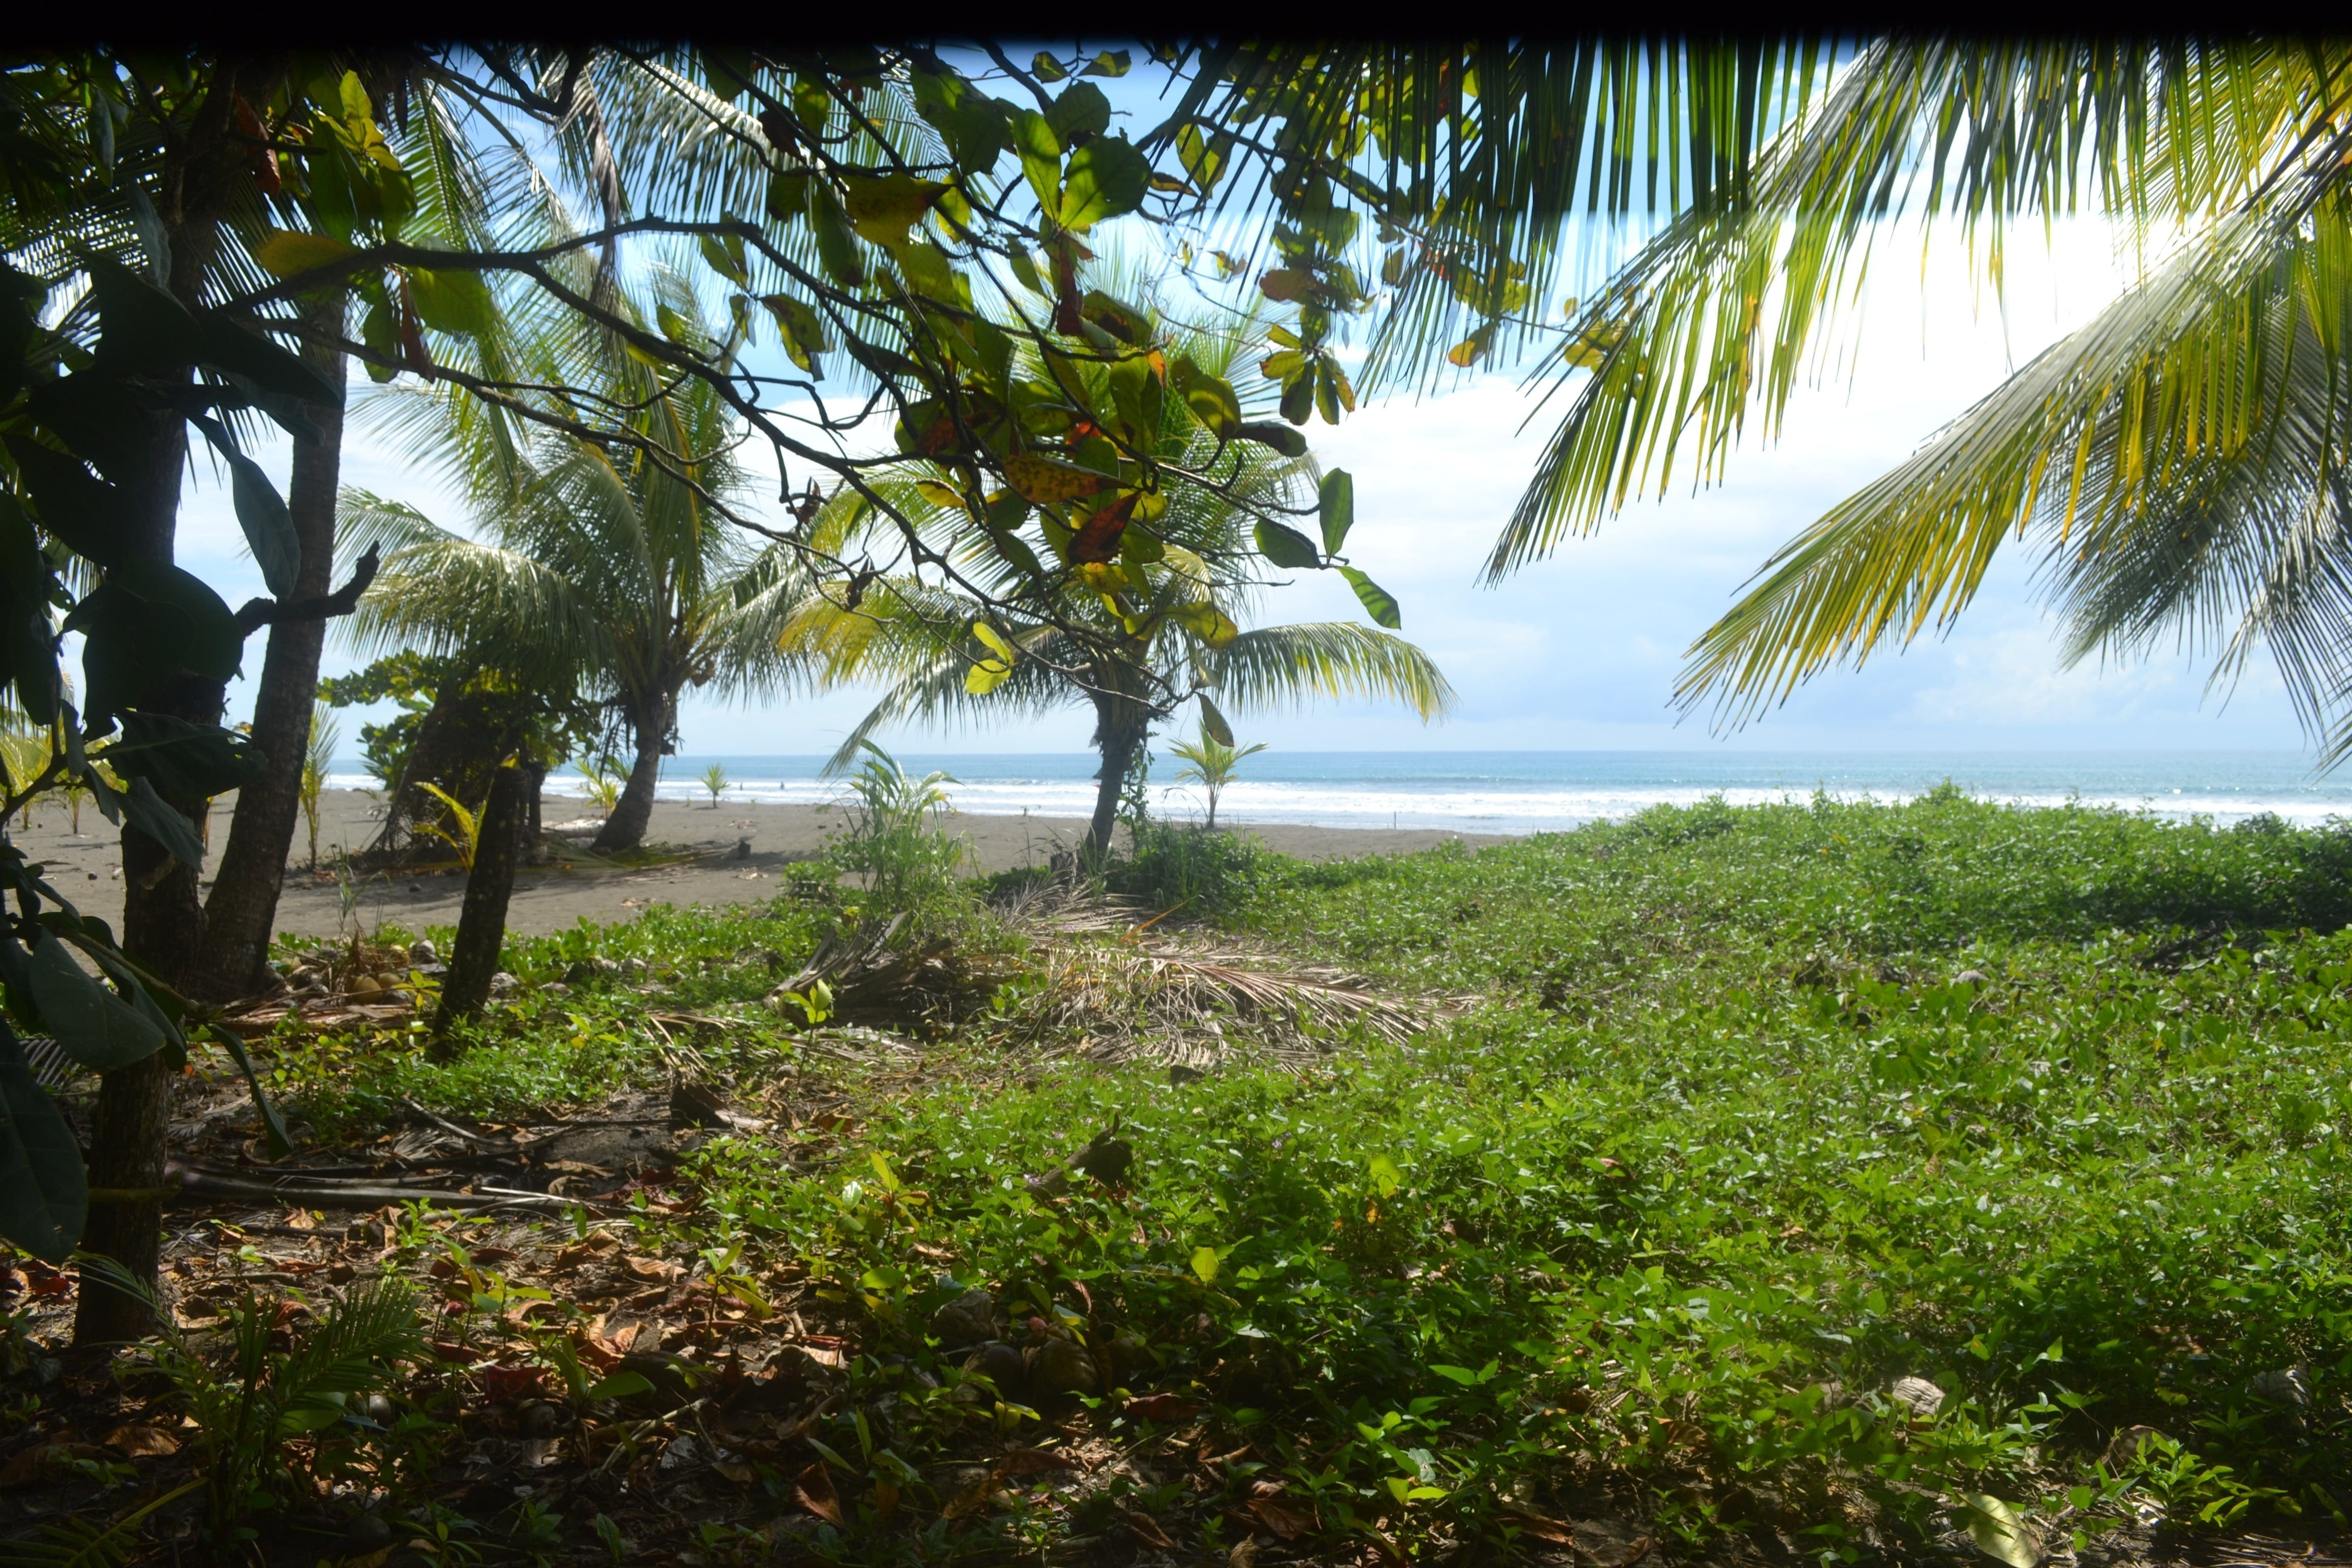 1.2 ACRES - Amazing Beachfront Property With Concession Ready For Dream Home Or Business!!!